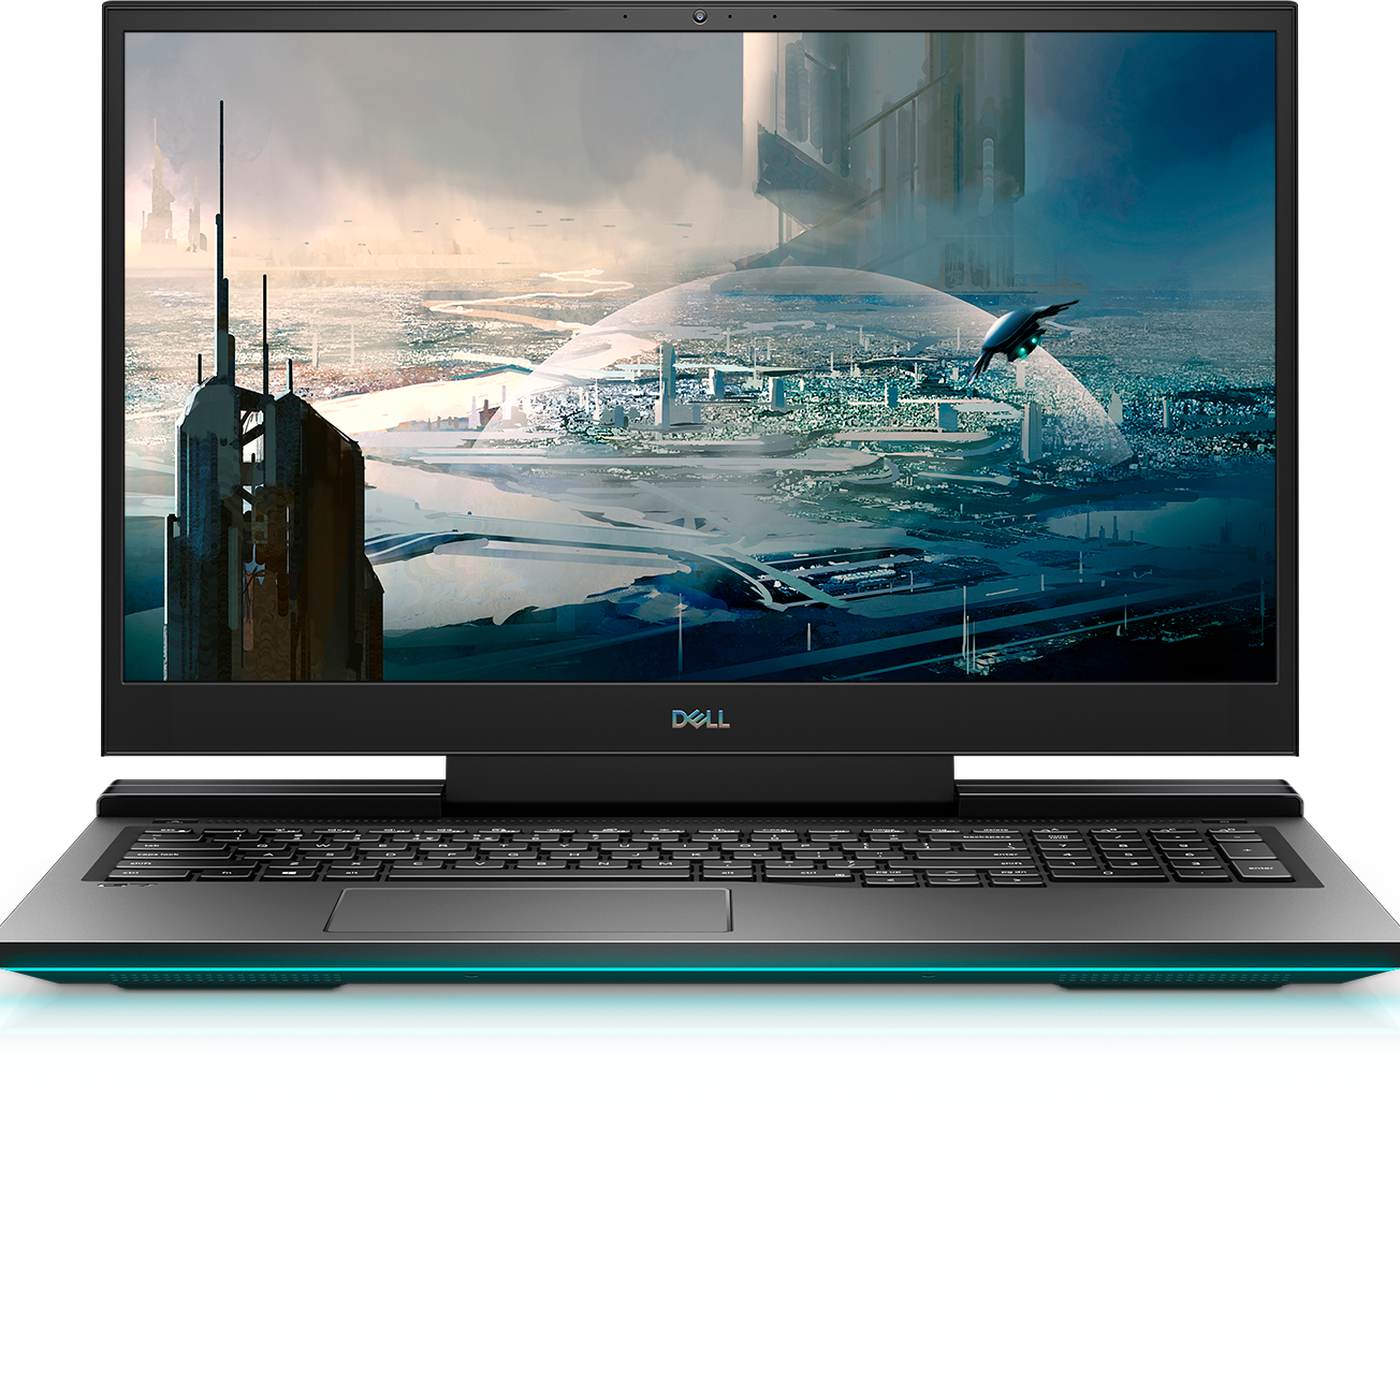 Dell Launches New G7 Gaming Laptop The Verge